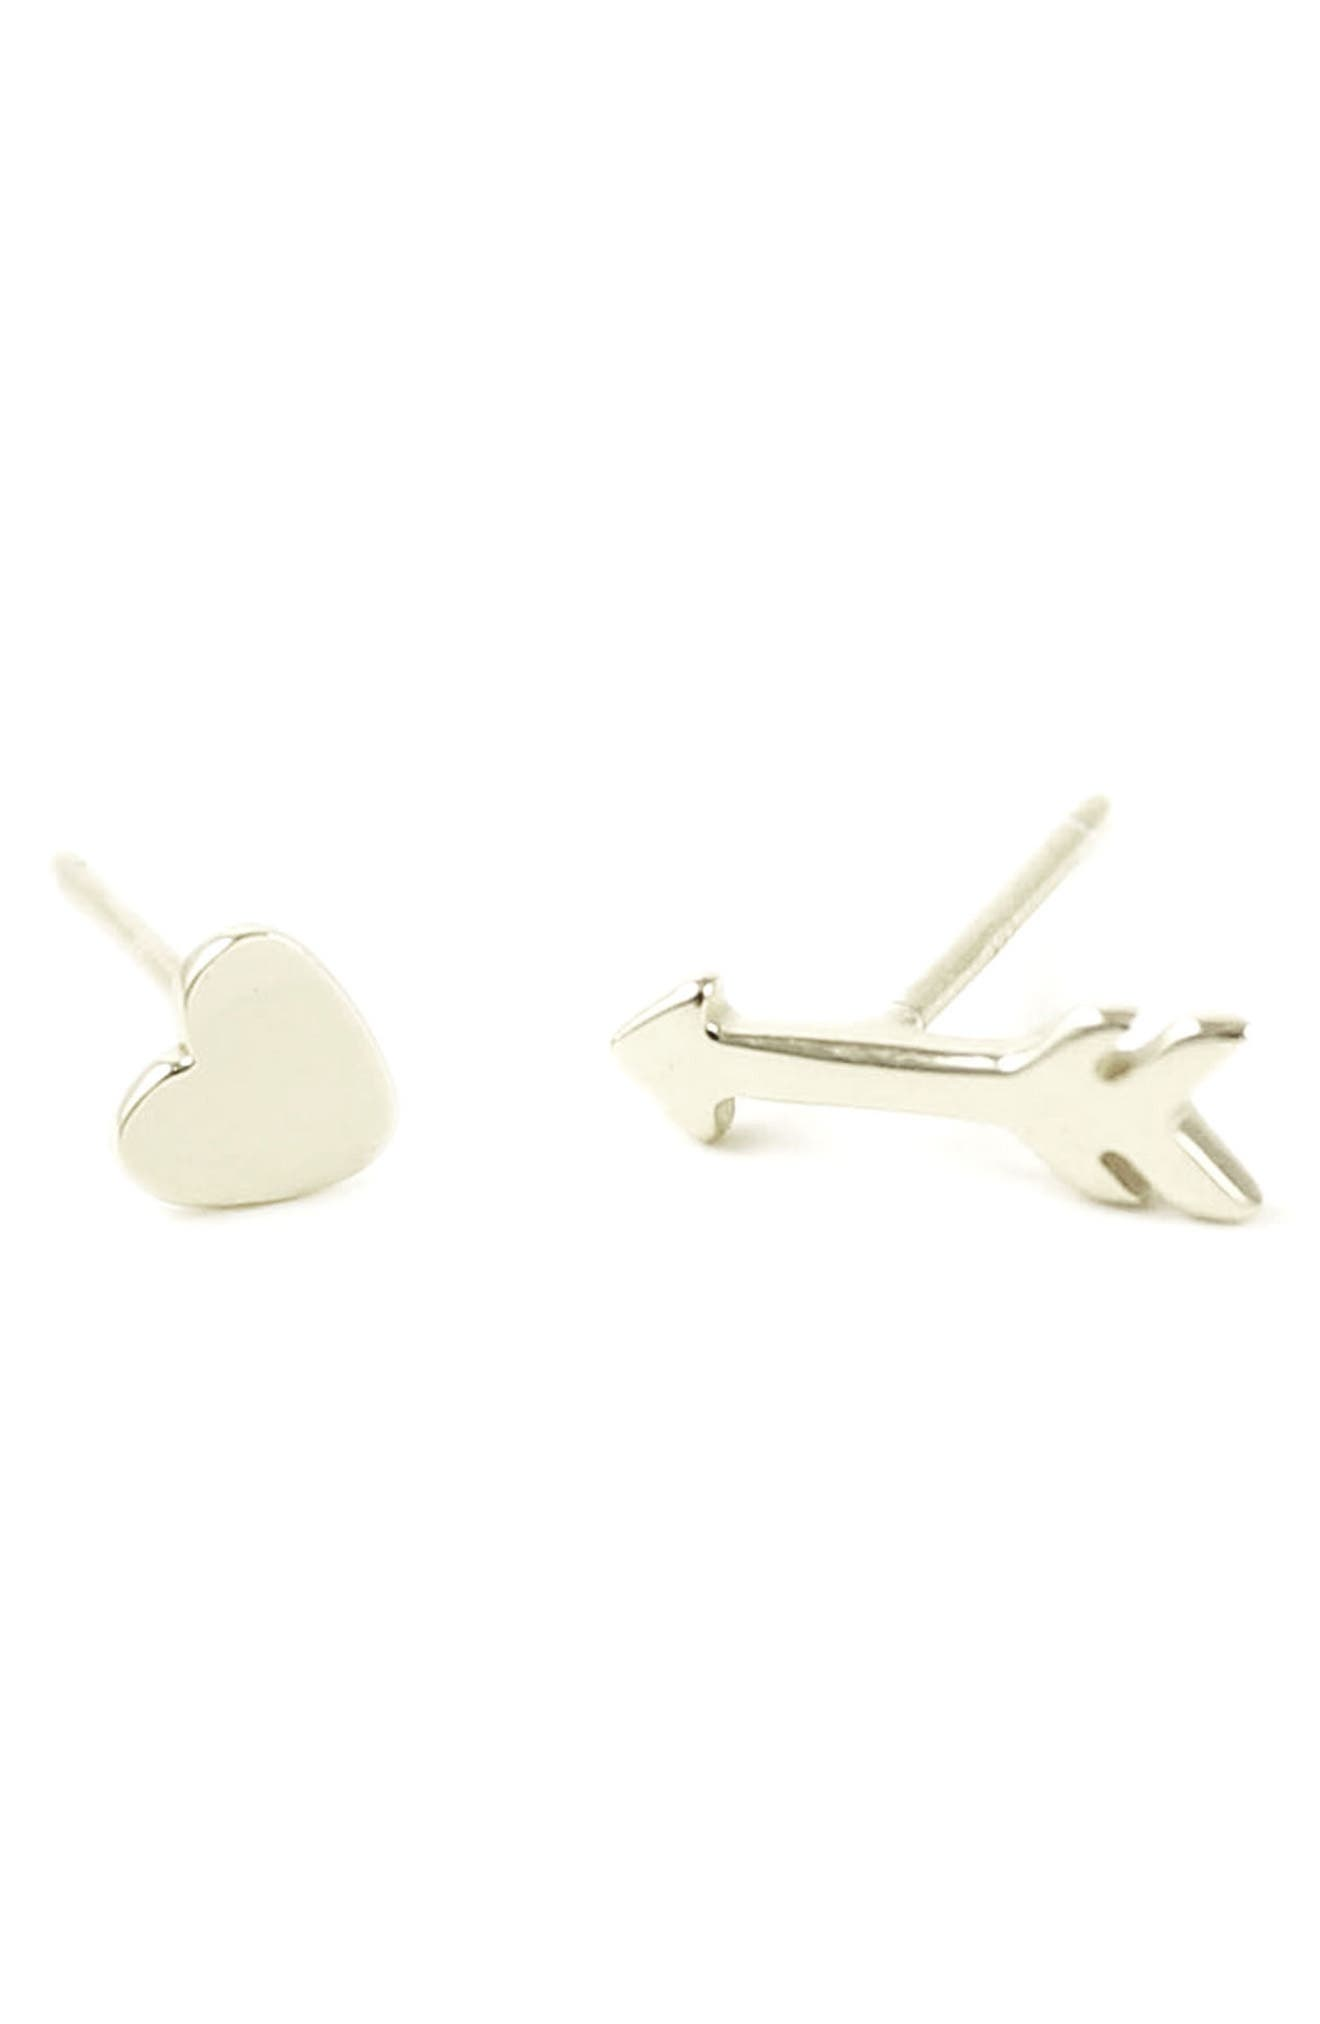 Heart & Arrow Stud Earrings,                             Main thumbnail 1, color,                             Silver